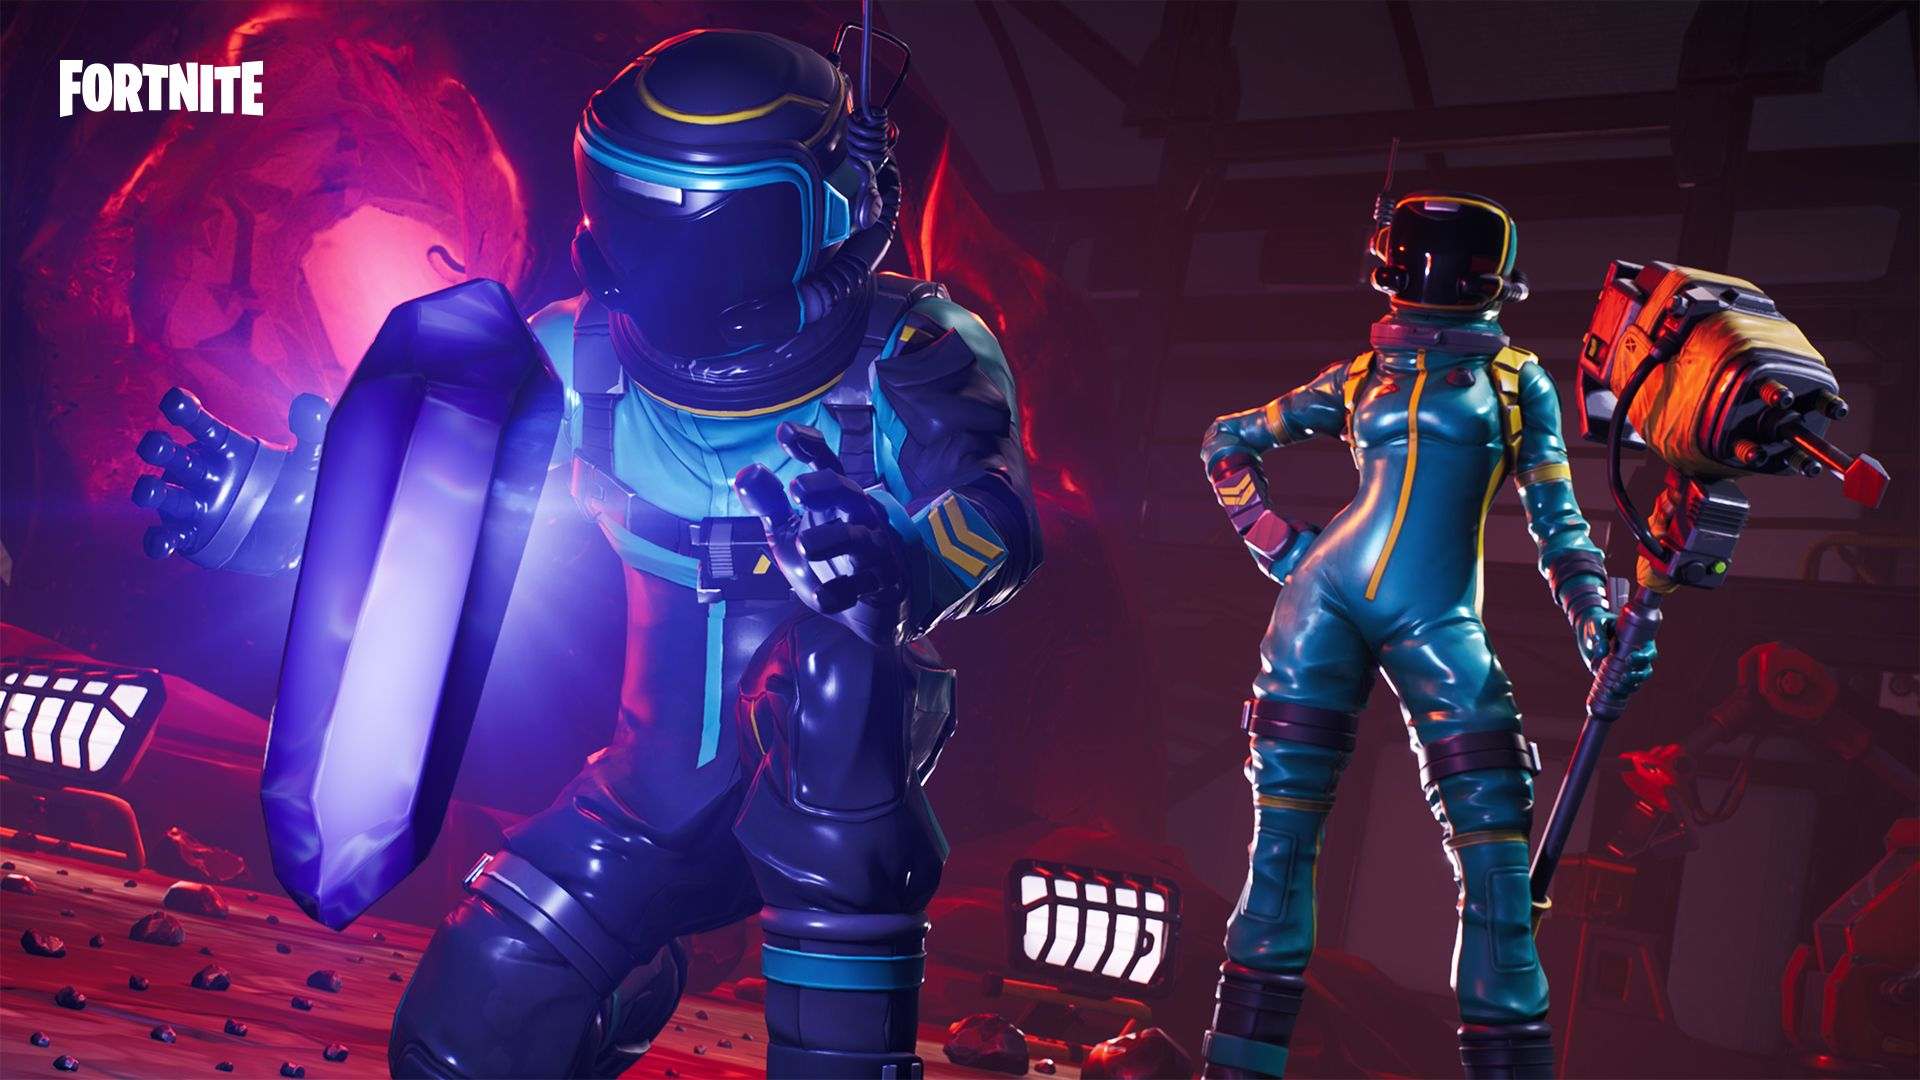 Fortnite  Gifting  Season 5 Start Date   Double XP Revealed  Fortnite  Gifting  Season 5 Start Date   Double XP Revealed